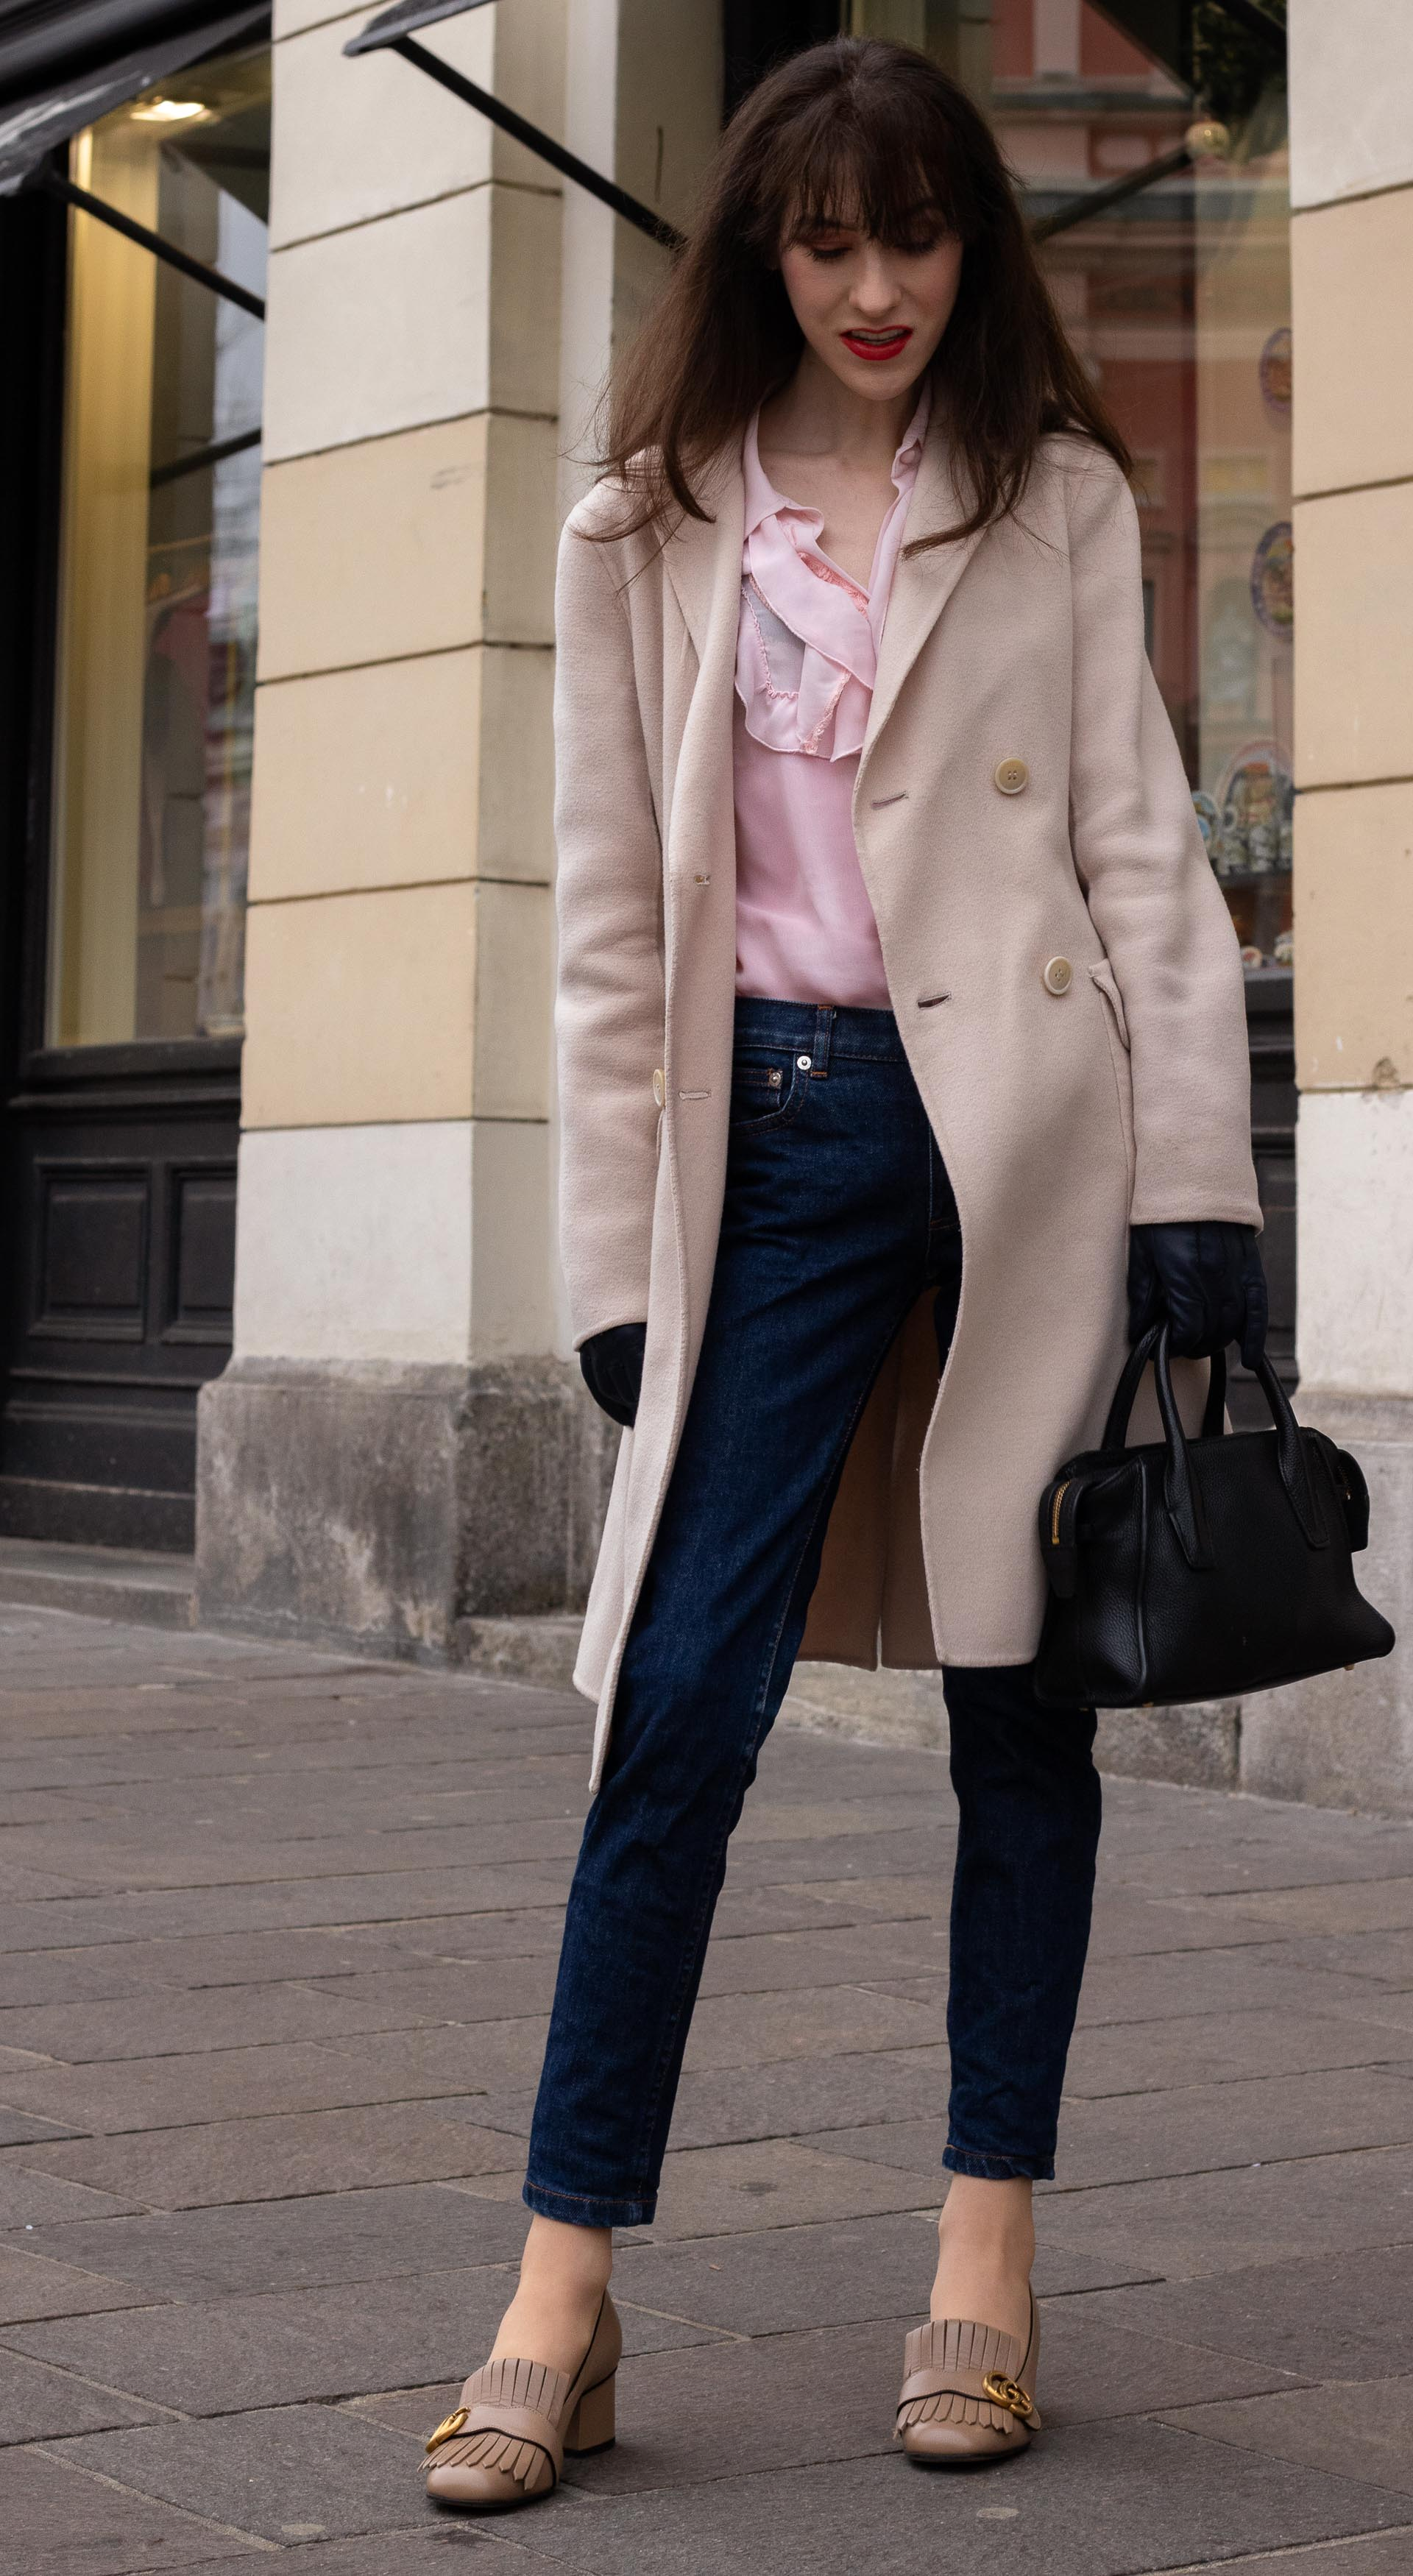 Fashion blogger Veronika Lipar of Brunette from Wall Street dressed in Gucci heeled loafer A.P.C. navy blue jeans Weekend Max Mara double breasted coat Red Valentino pink blouse black top handle bag blue leather gloves on the street in-between seasons